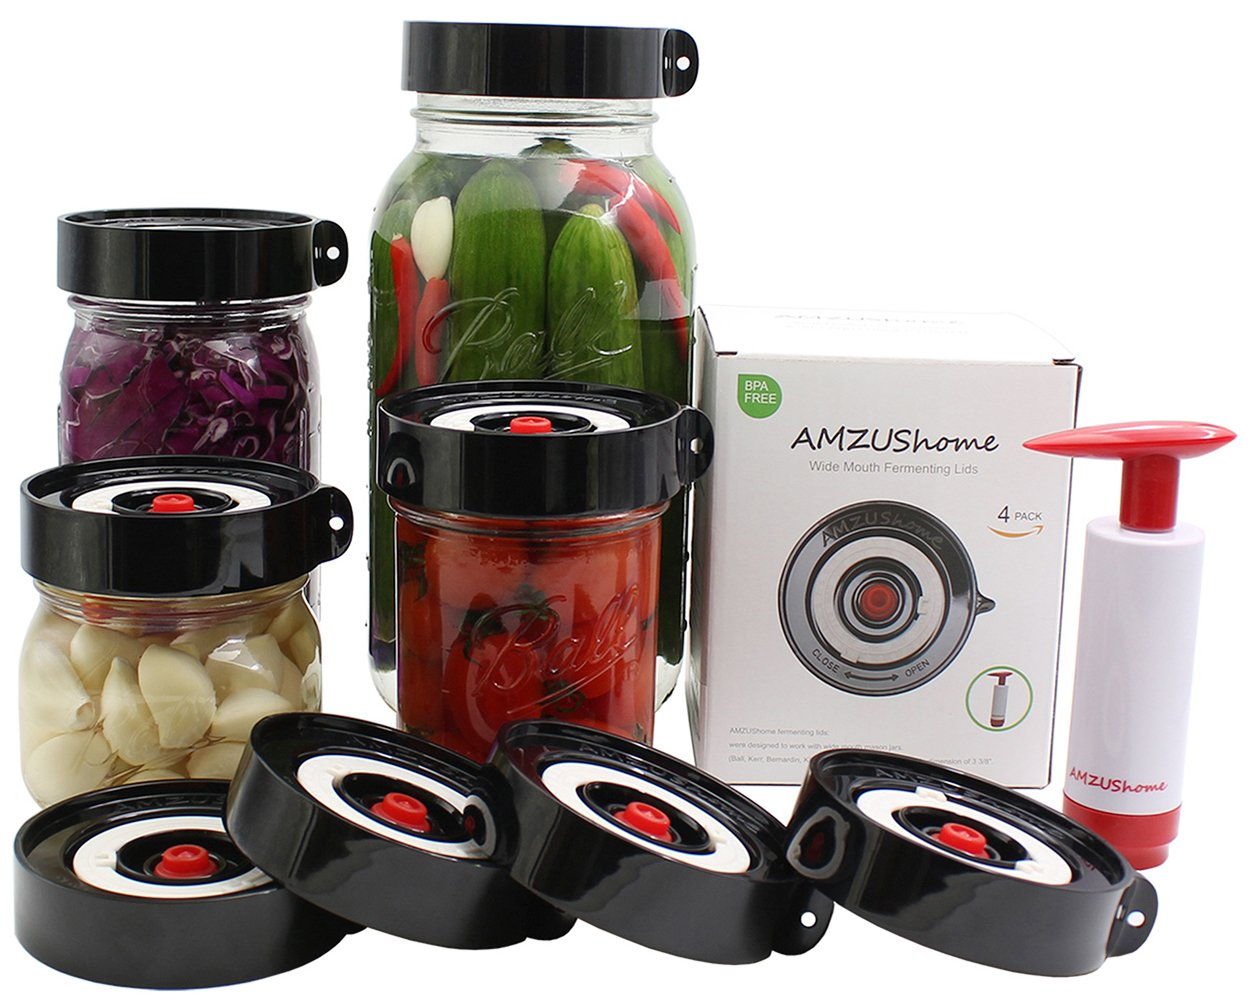 AMZUShome Fermenting Lids Kit Waterless Airlock For Wide Mouth Mason Jar Fermentation Not Crock Pots,Make Sauerkraut, Kimchi, Pickles Or Fermented Probiotic Foods. 4 Pack+1 Pump+1 Sponge Brush (Black) Both Day and Month tracker